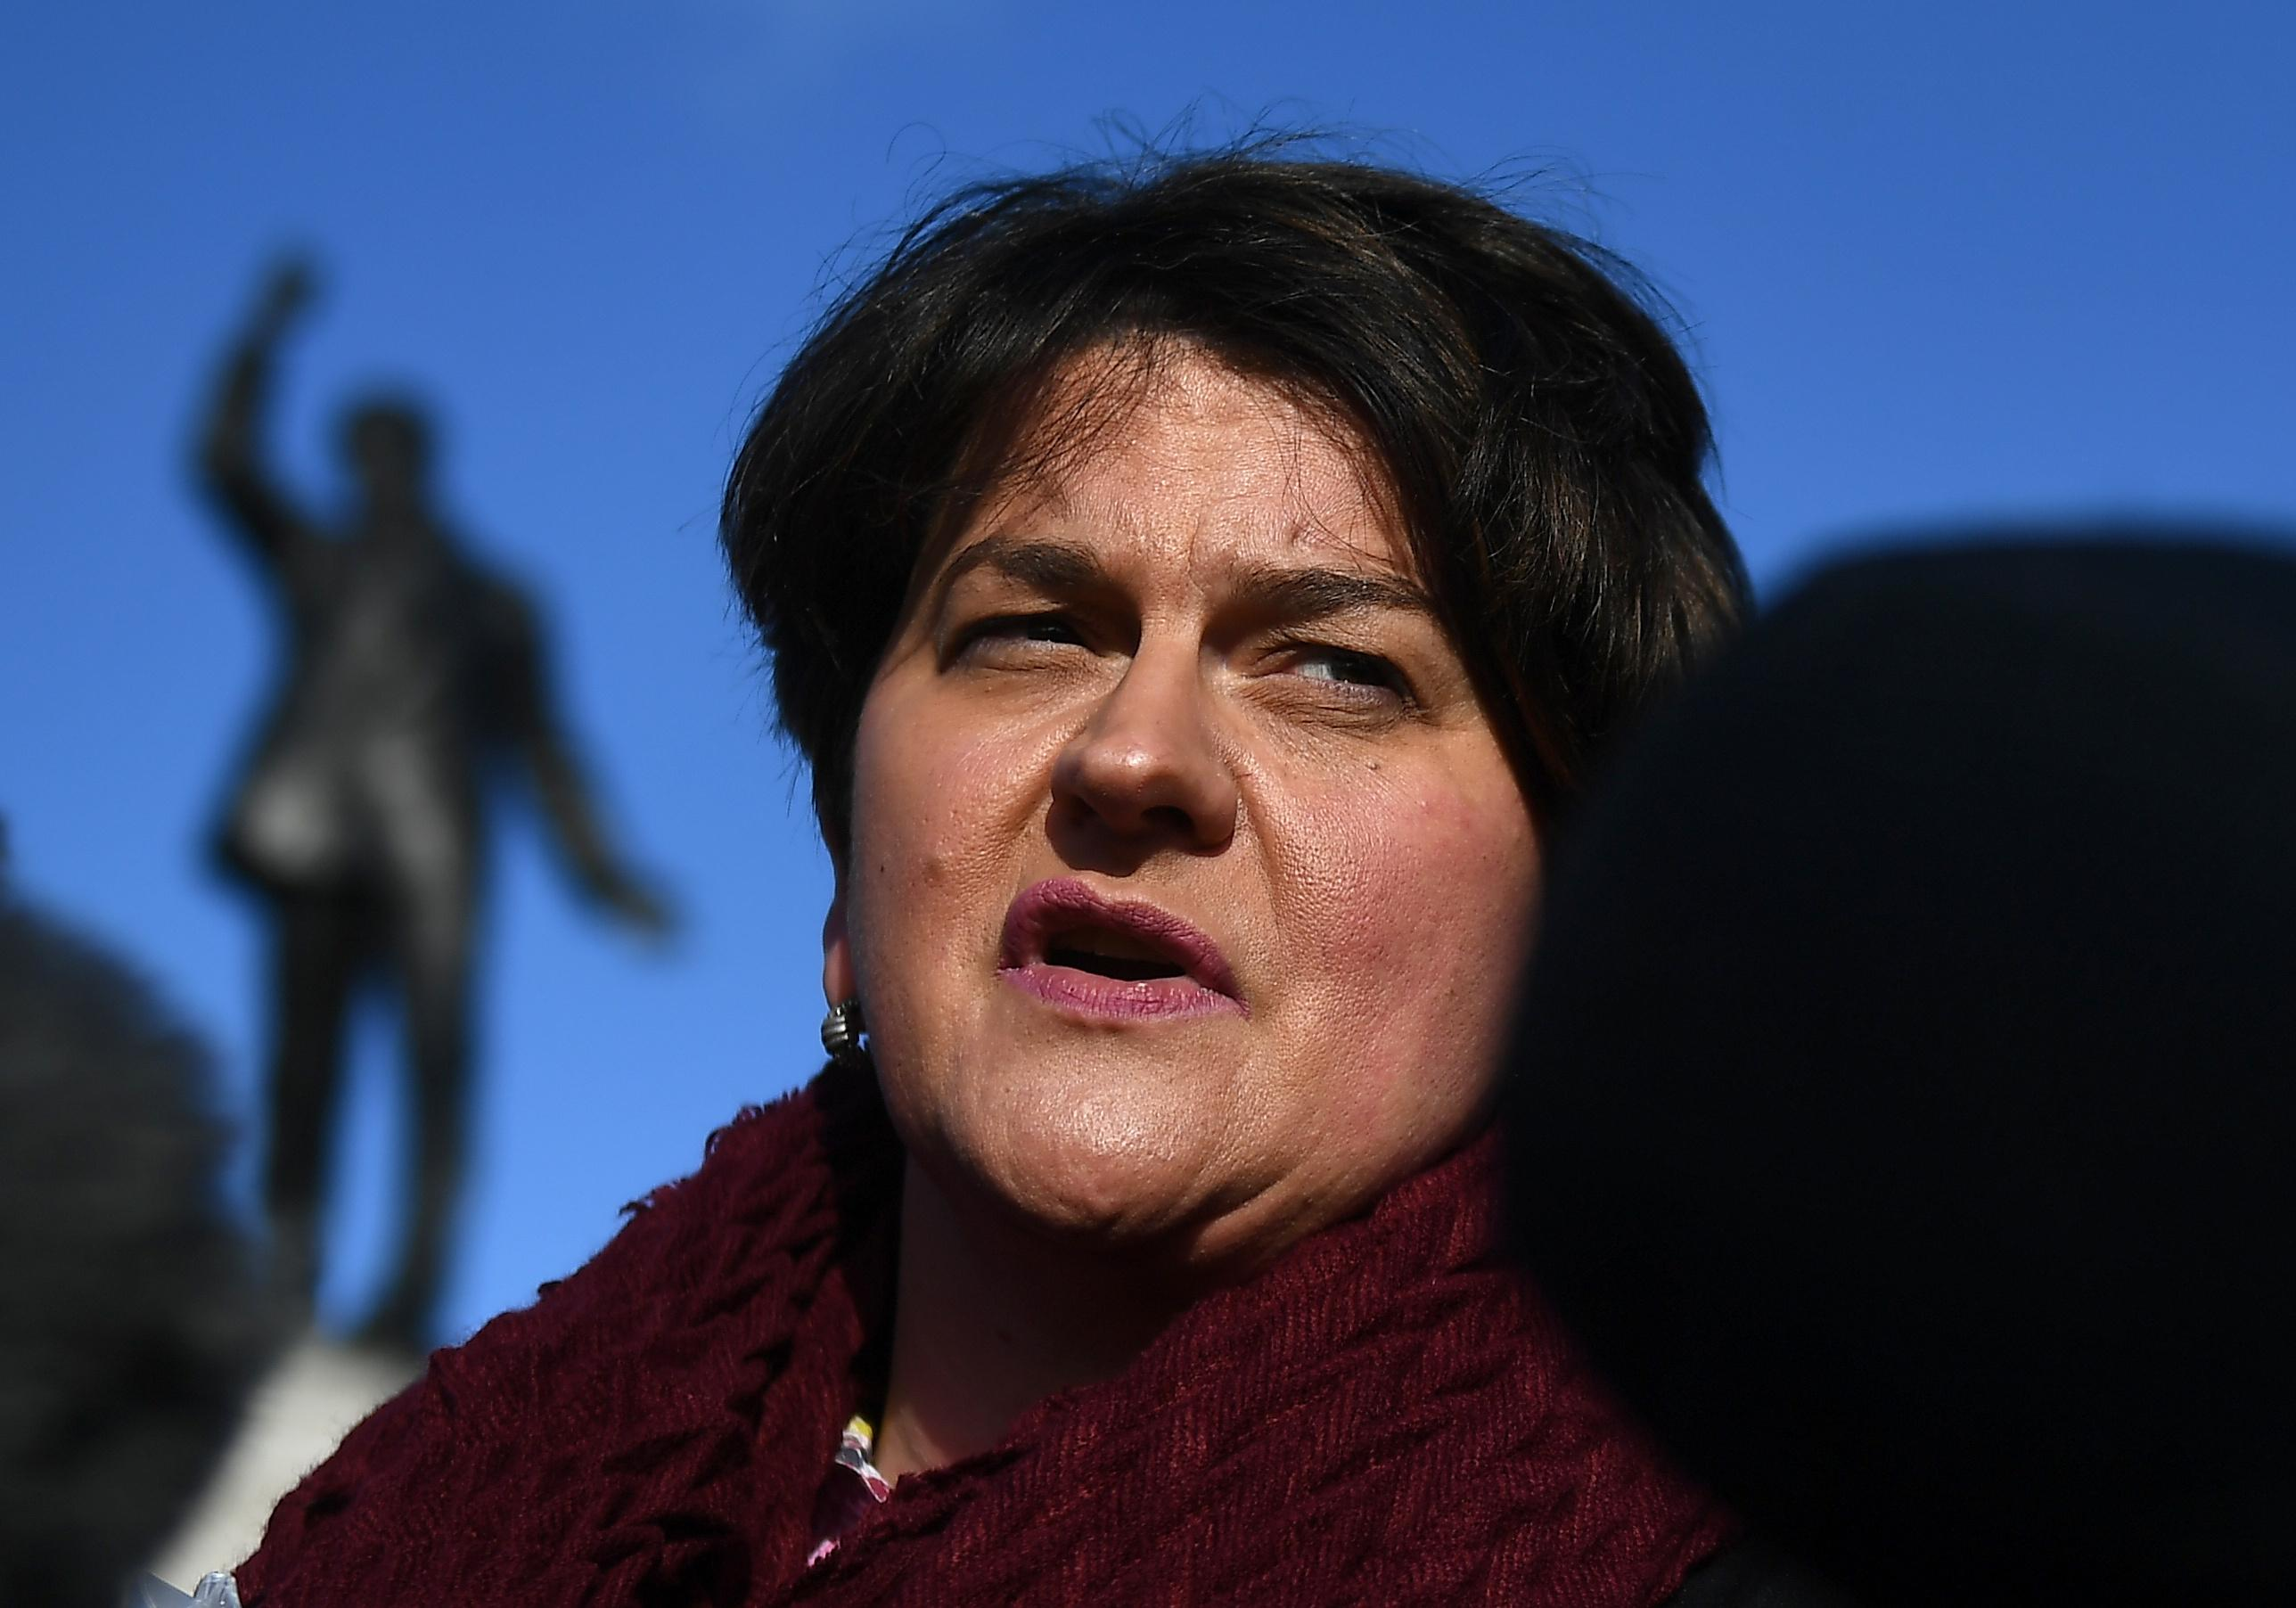 Brexit: DUP leader says abstaining on May's deal 'never an option'